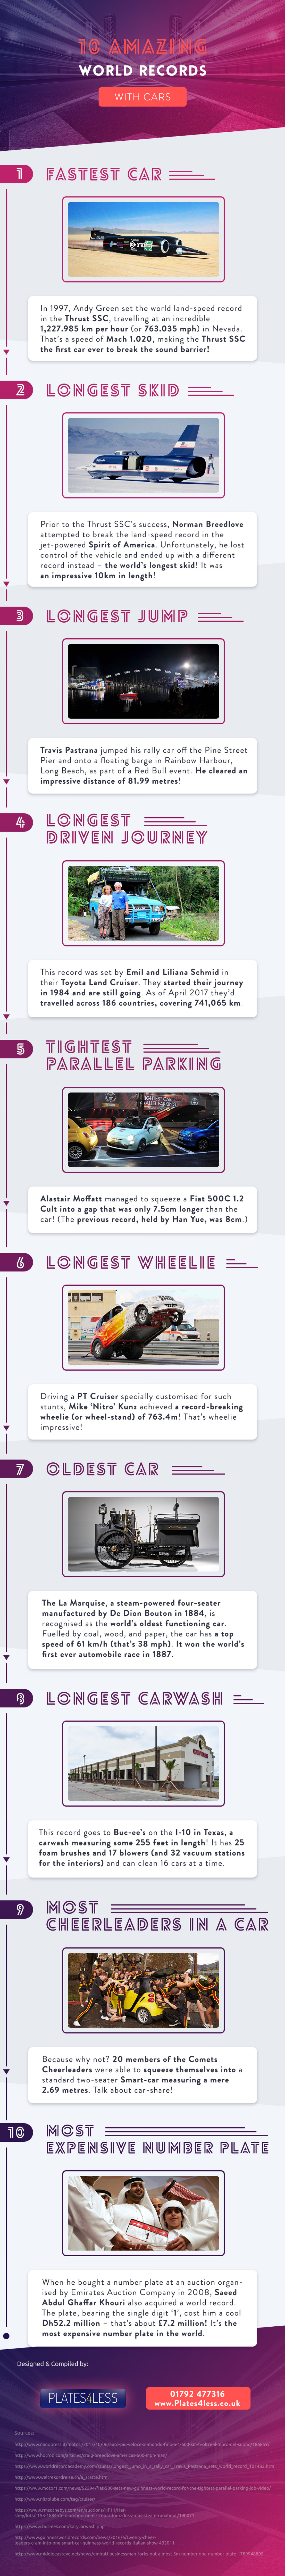 10 Amazing World Records With Cars Infographic